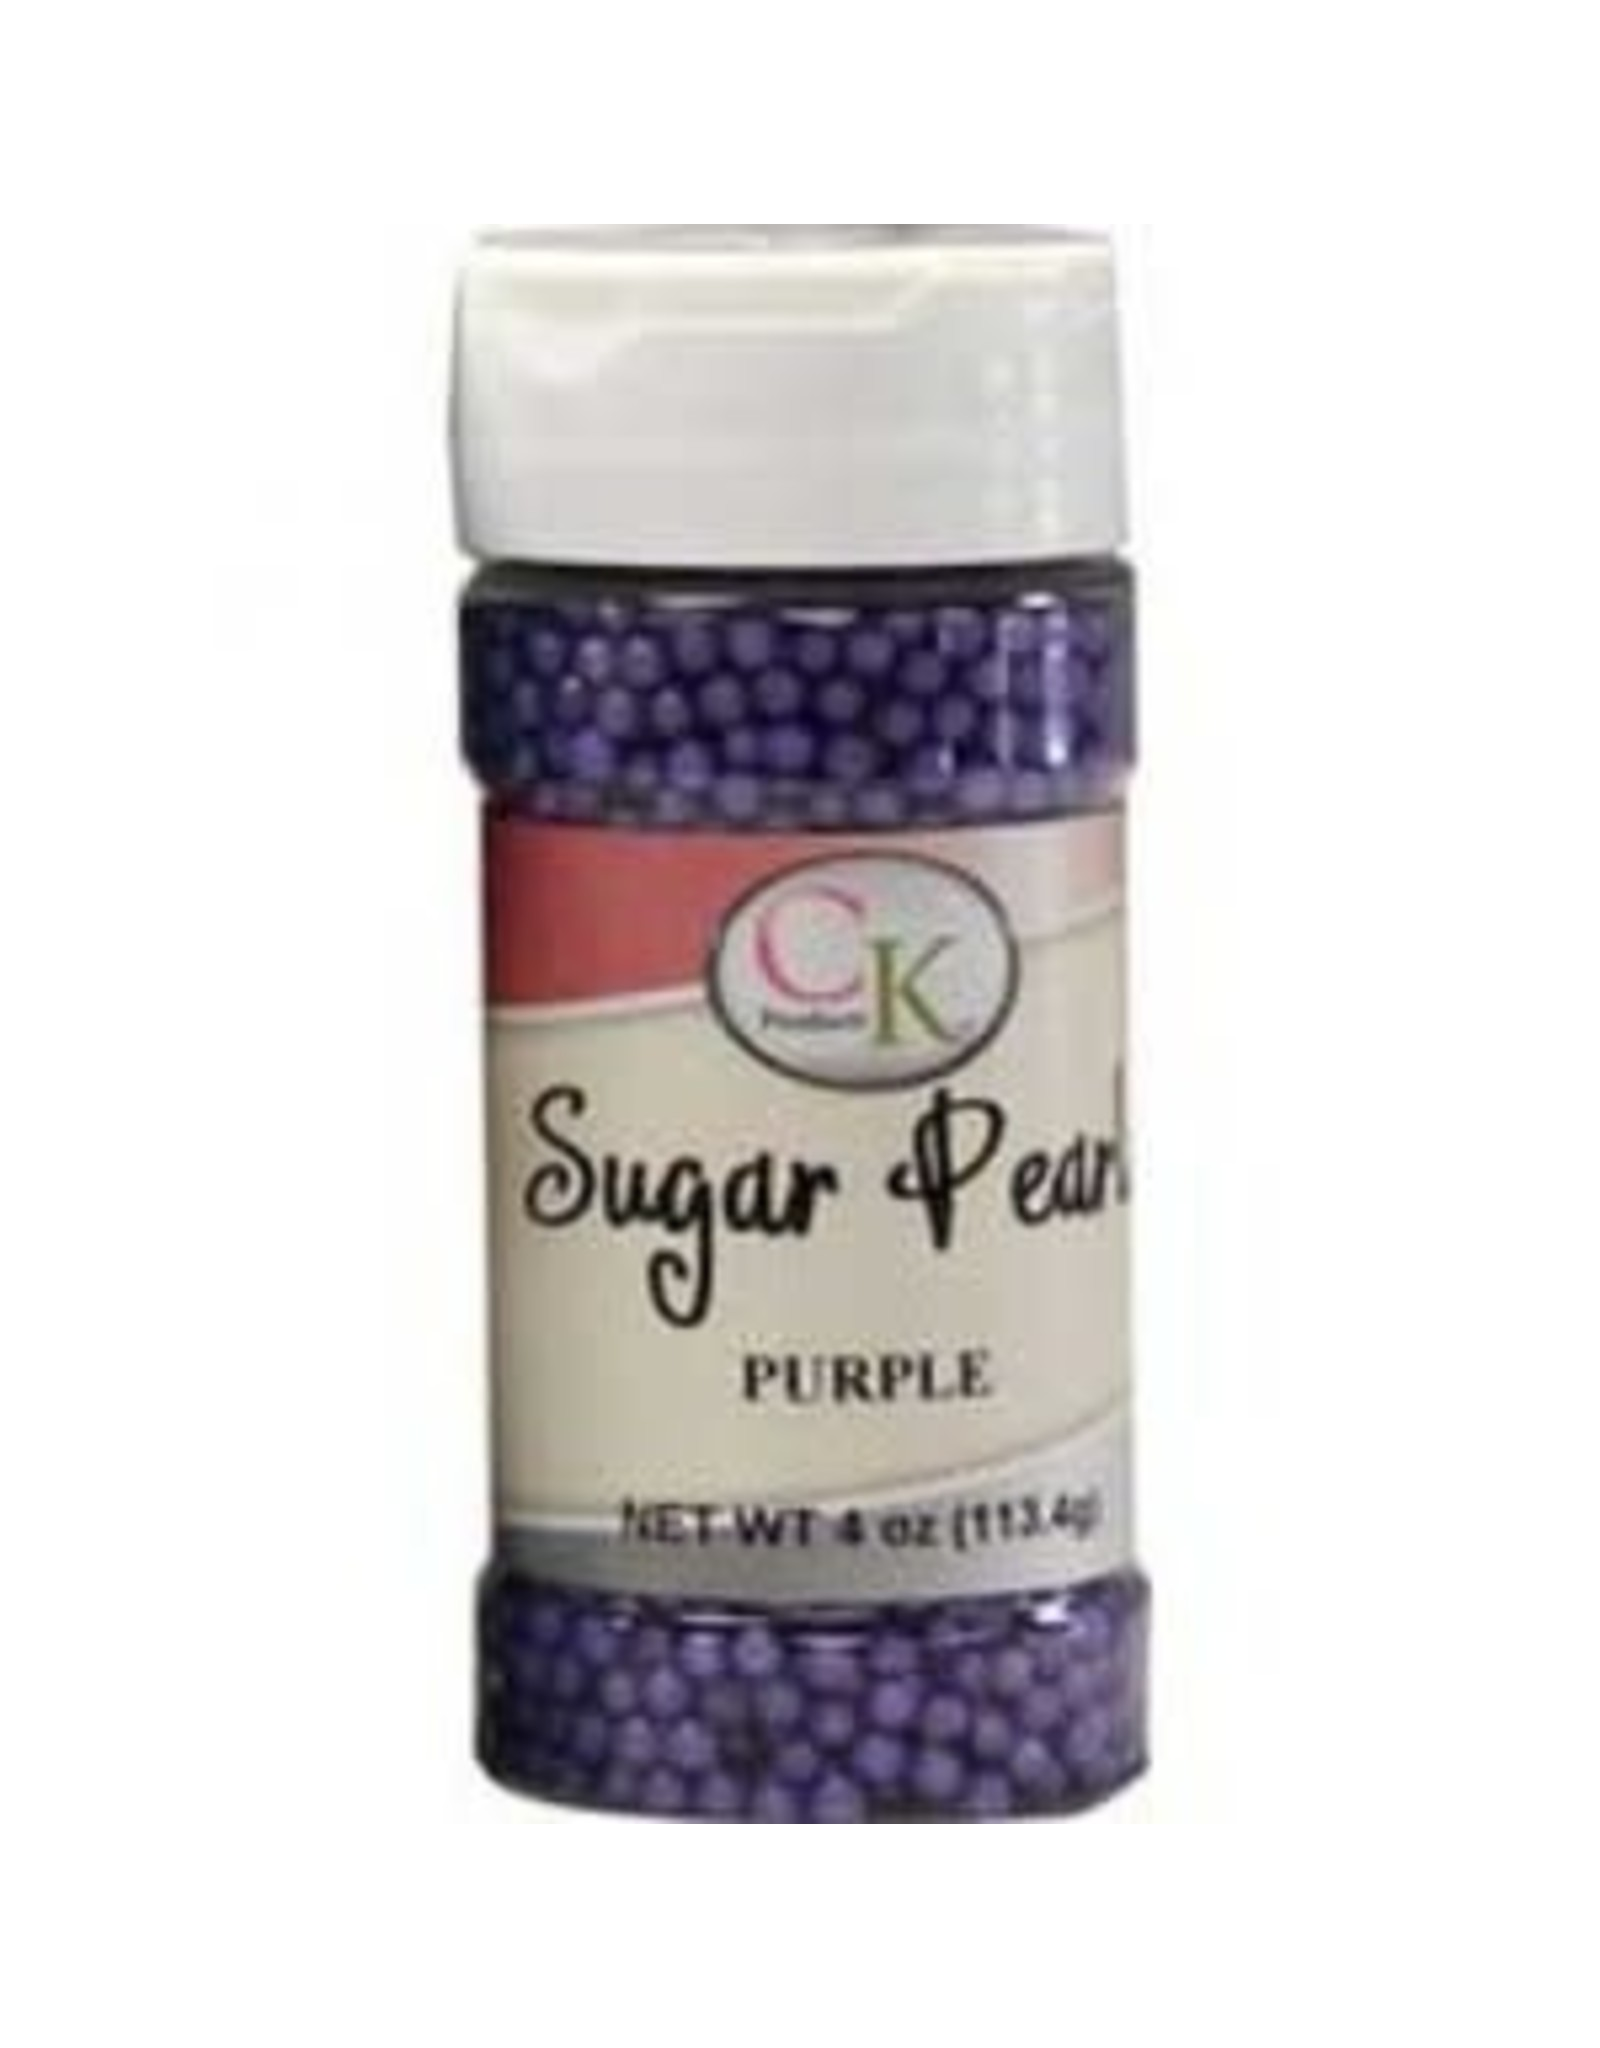 CK Purple Sugar Pearls